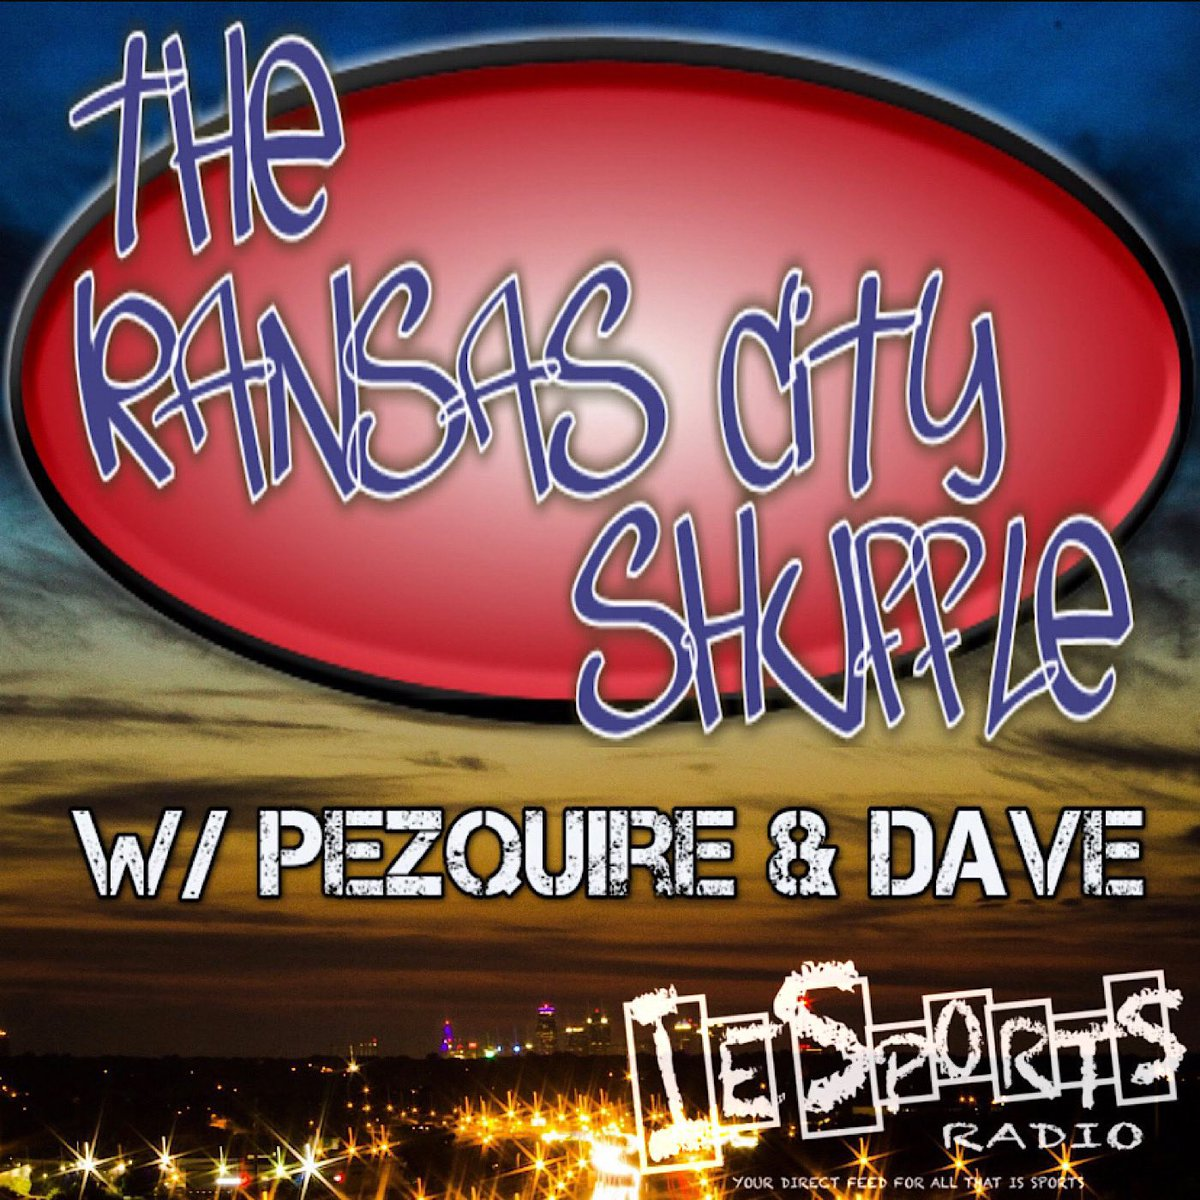 Tune in live for #TheKansasCityShuffle with @KCShuffleShow and @ThePezquireFool! #NFL #ChiefsKingdom #Chiefs #BillsMafia #AFCChampionship #SBLV #TampaBay #Buccaneers #RunItBack #StatsWithPablo #NationalPlanForVacationDay #Mahomes #TomBrady